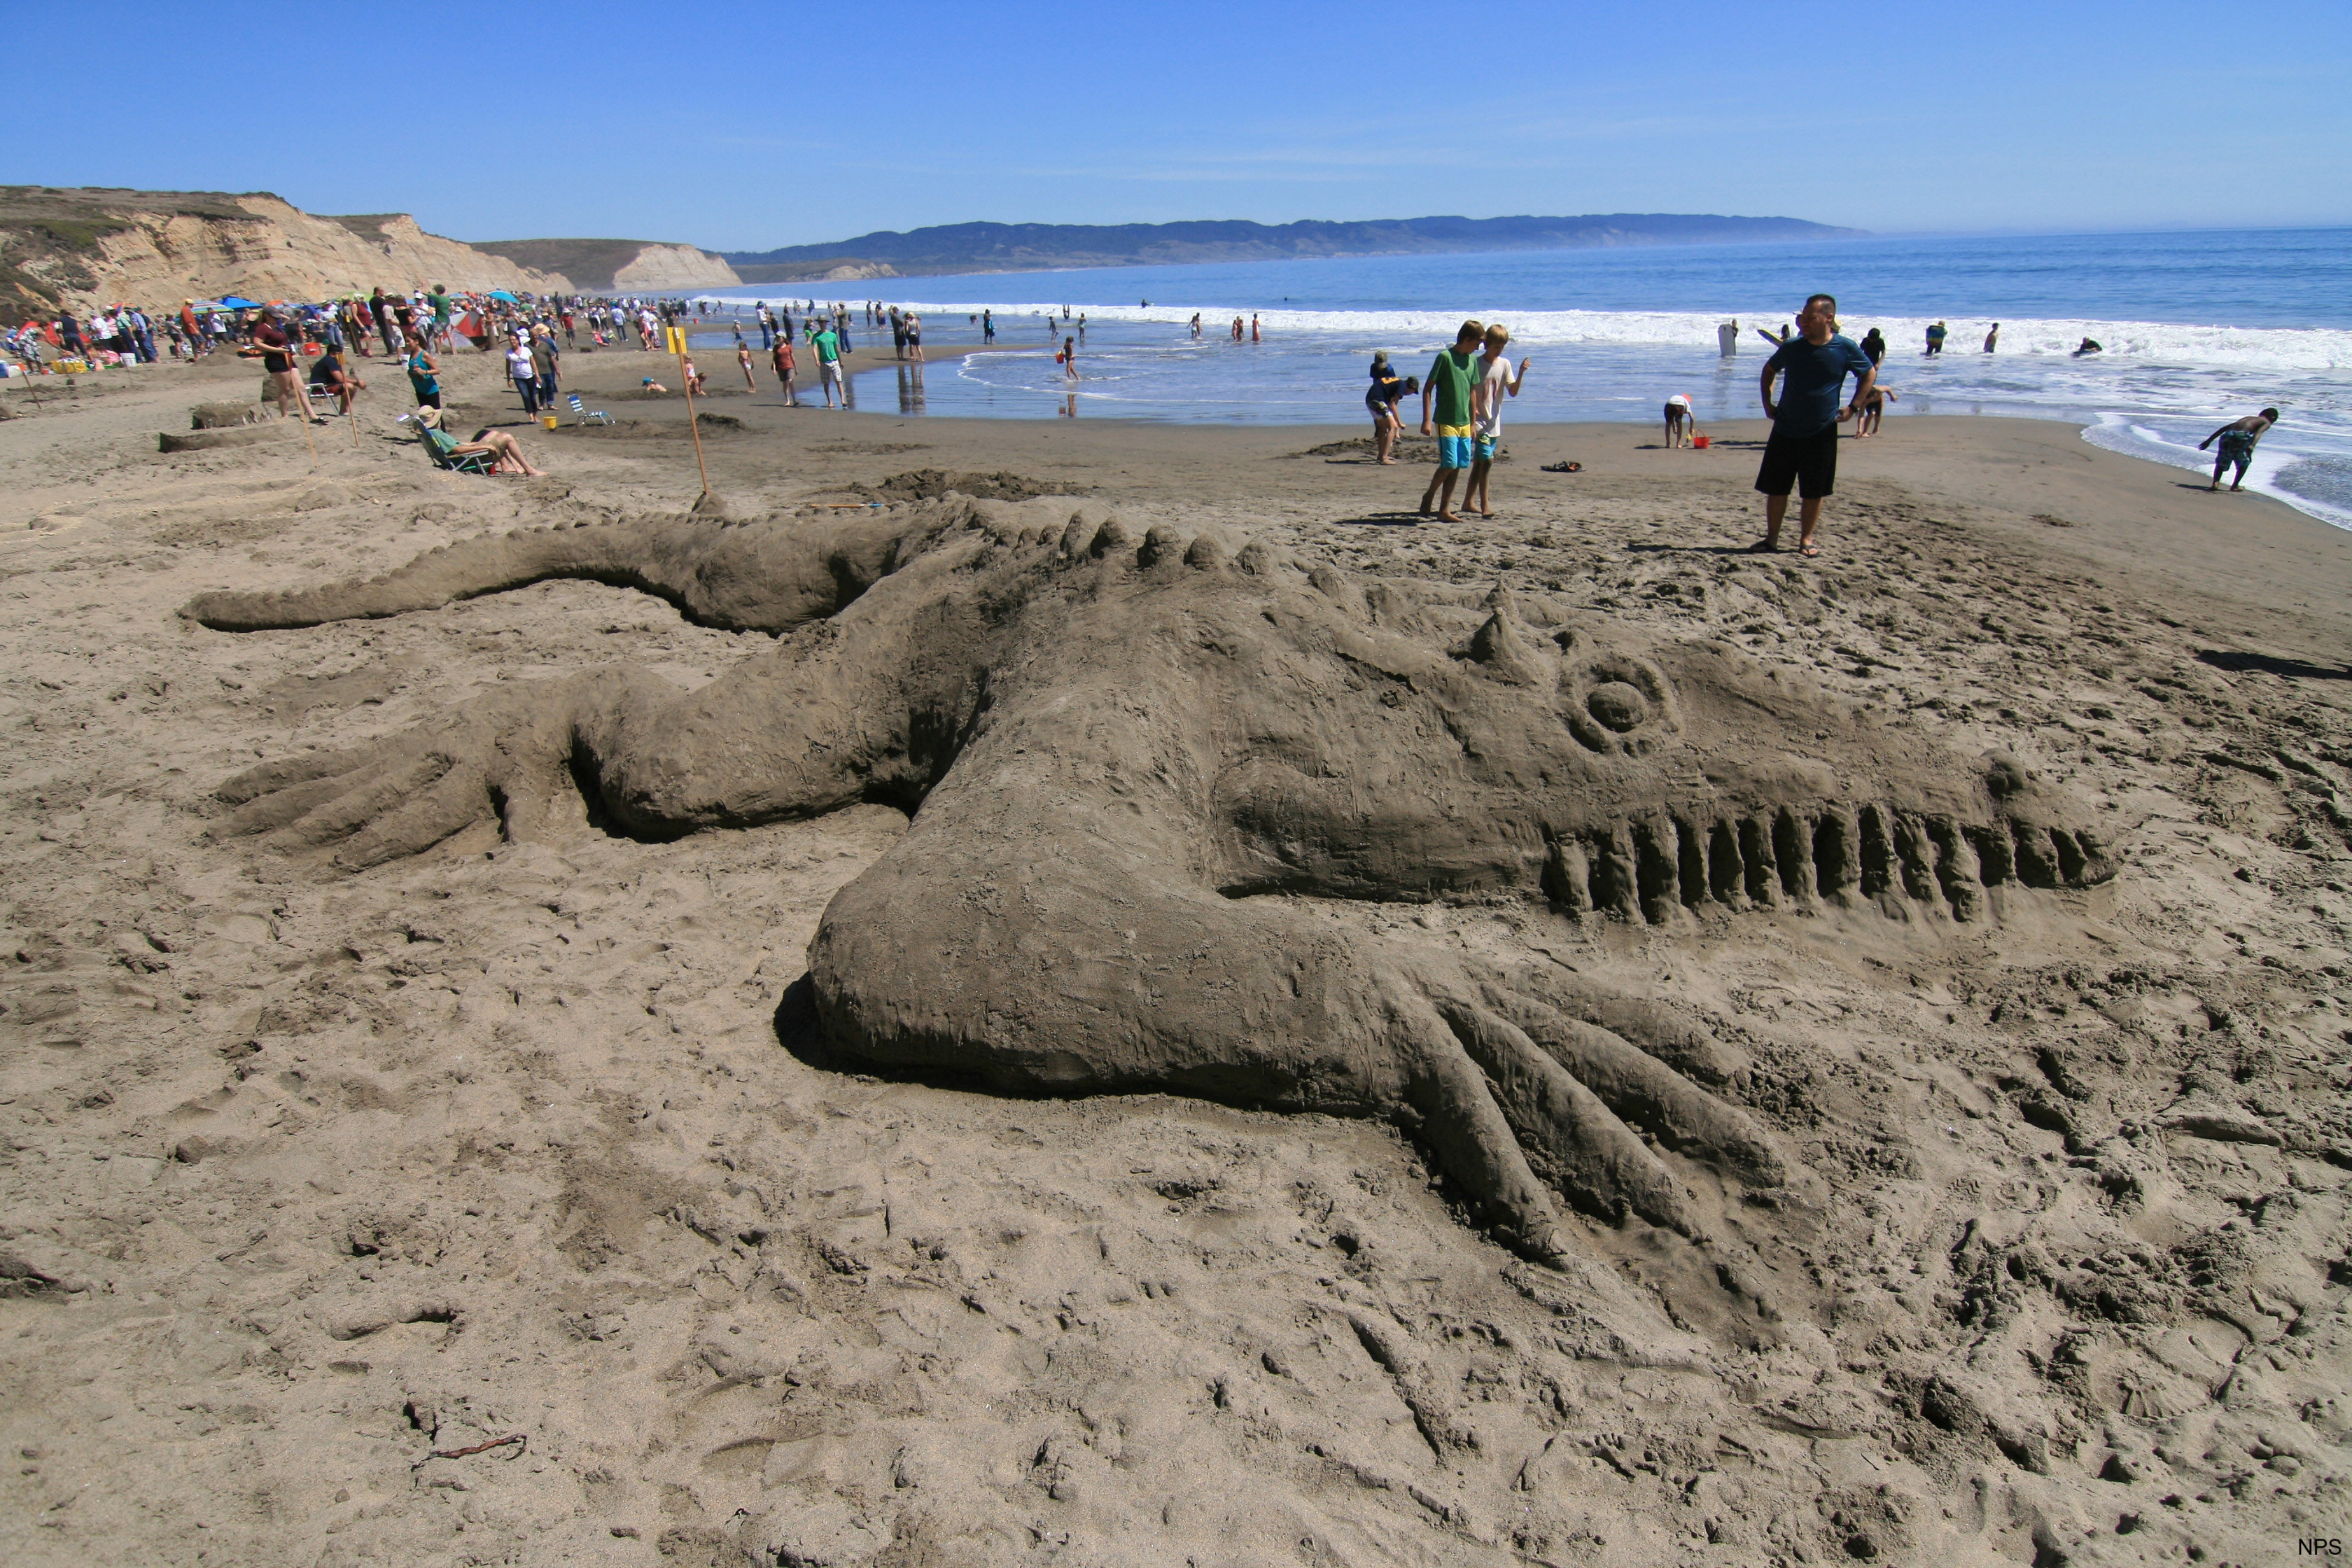 A sandcastle contest produced a dinosaur on a crowded beach at Point Reyes.